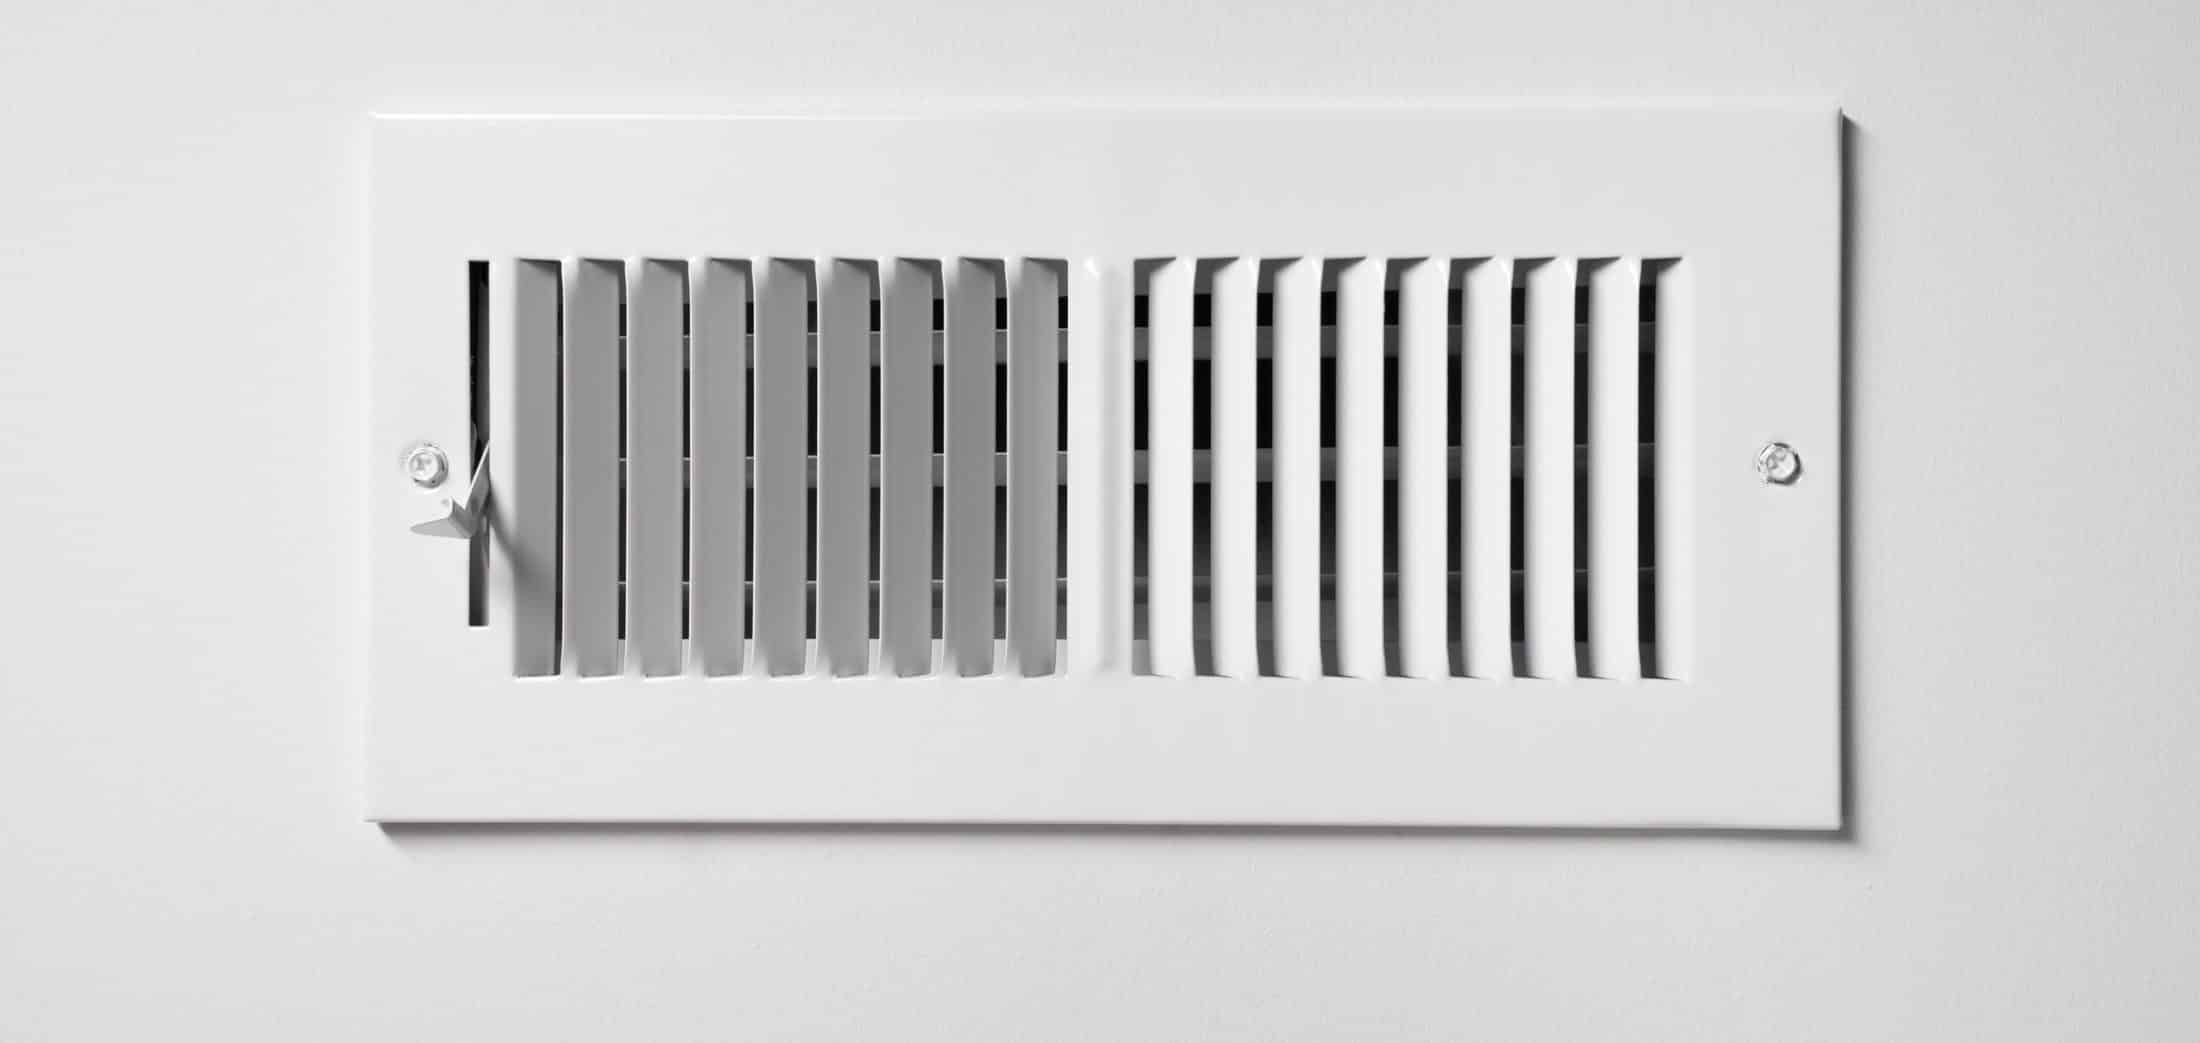 A heating and cooling vent register on the wall of a home